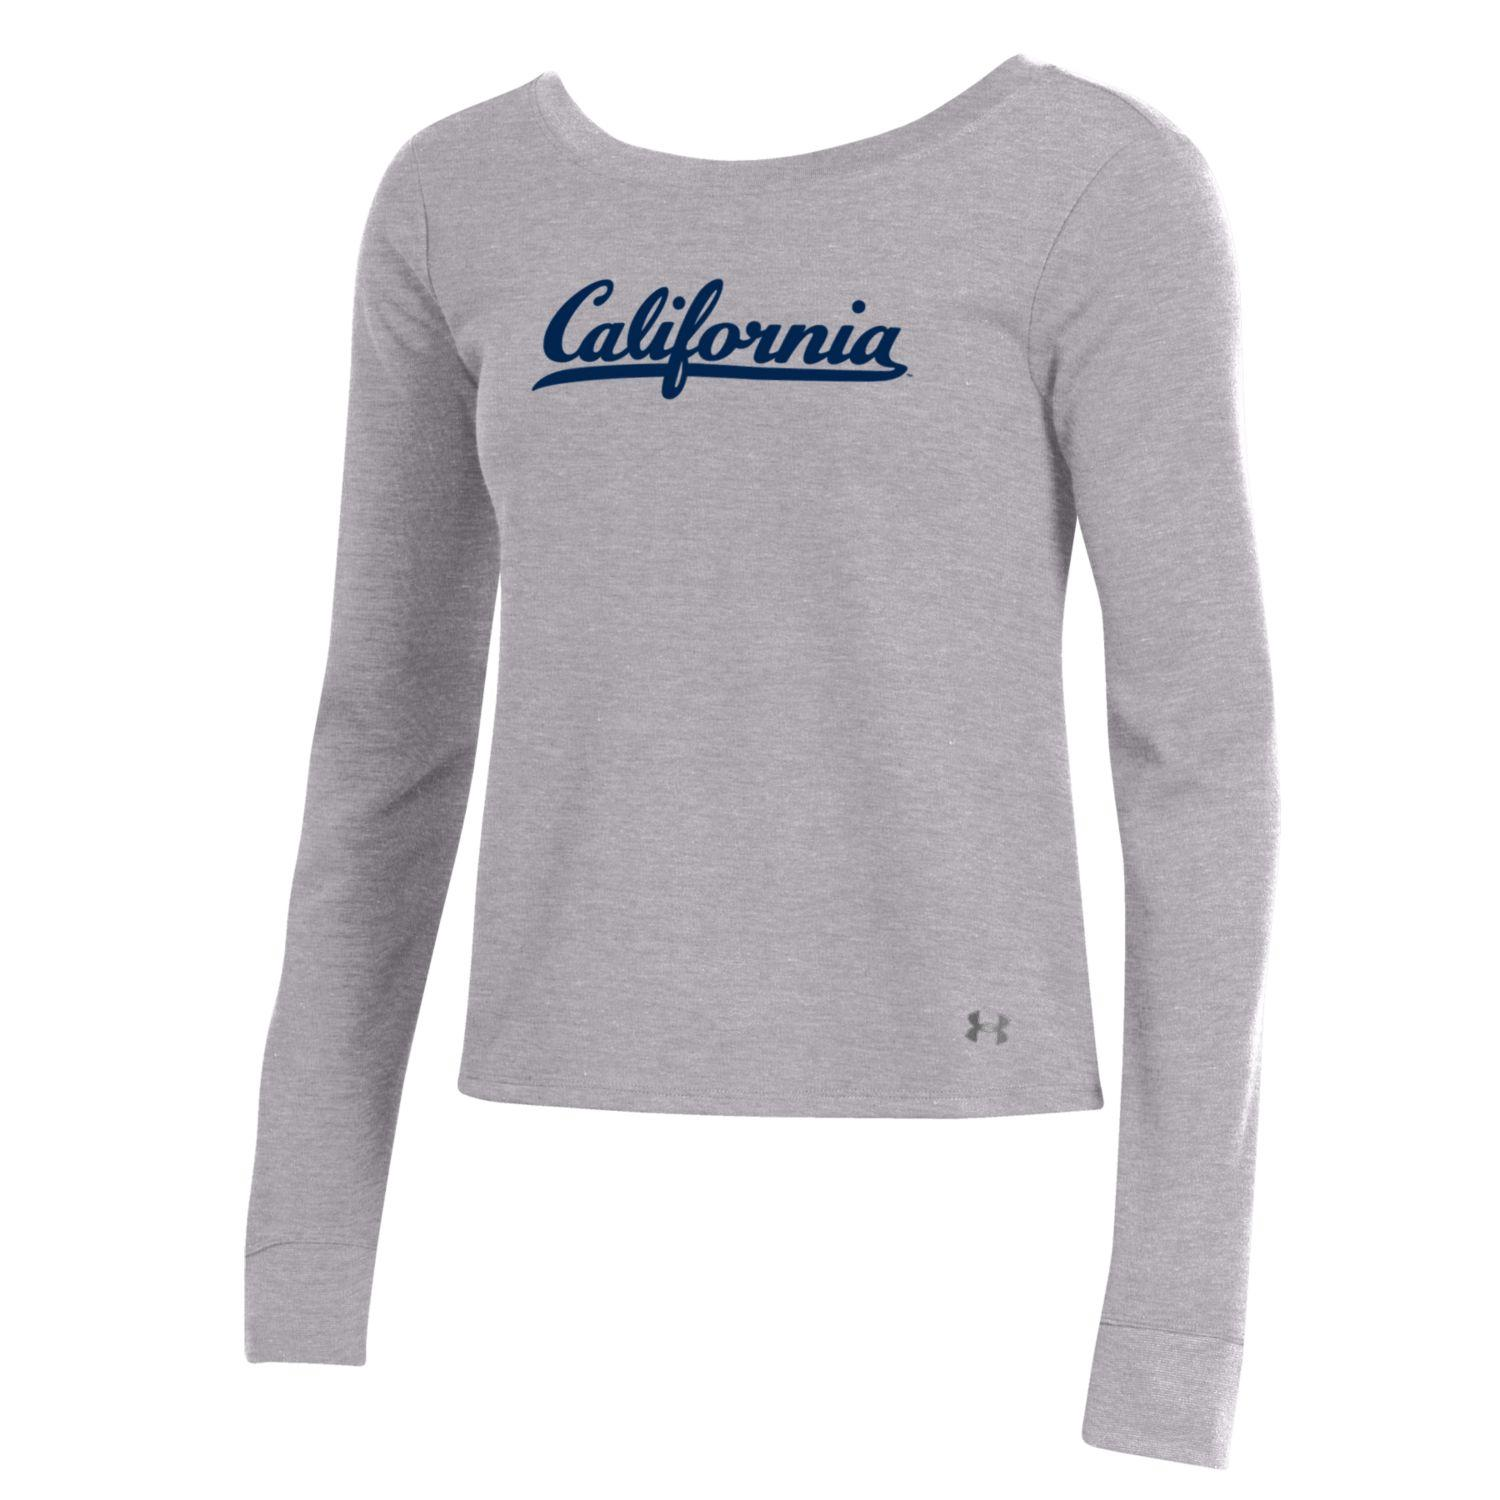 W Cross Back Crew by Under Armour California